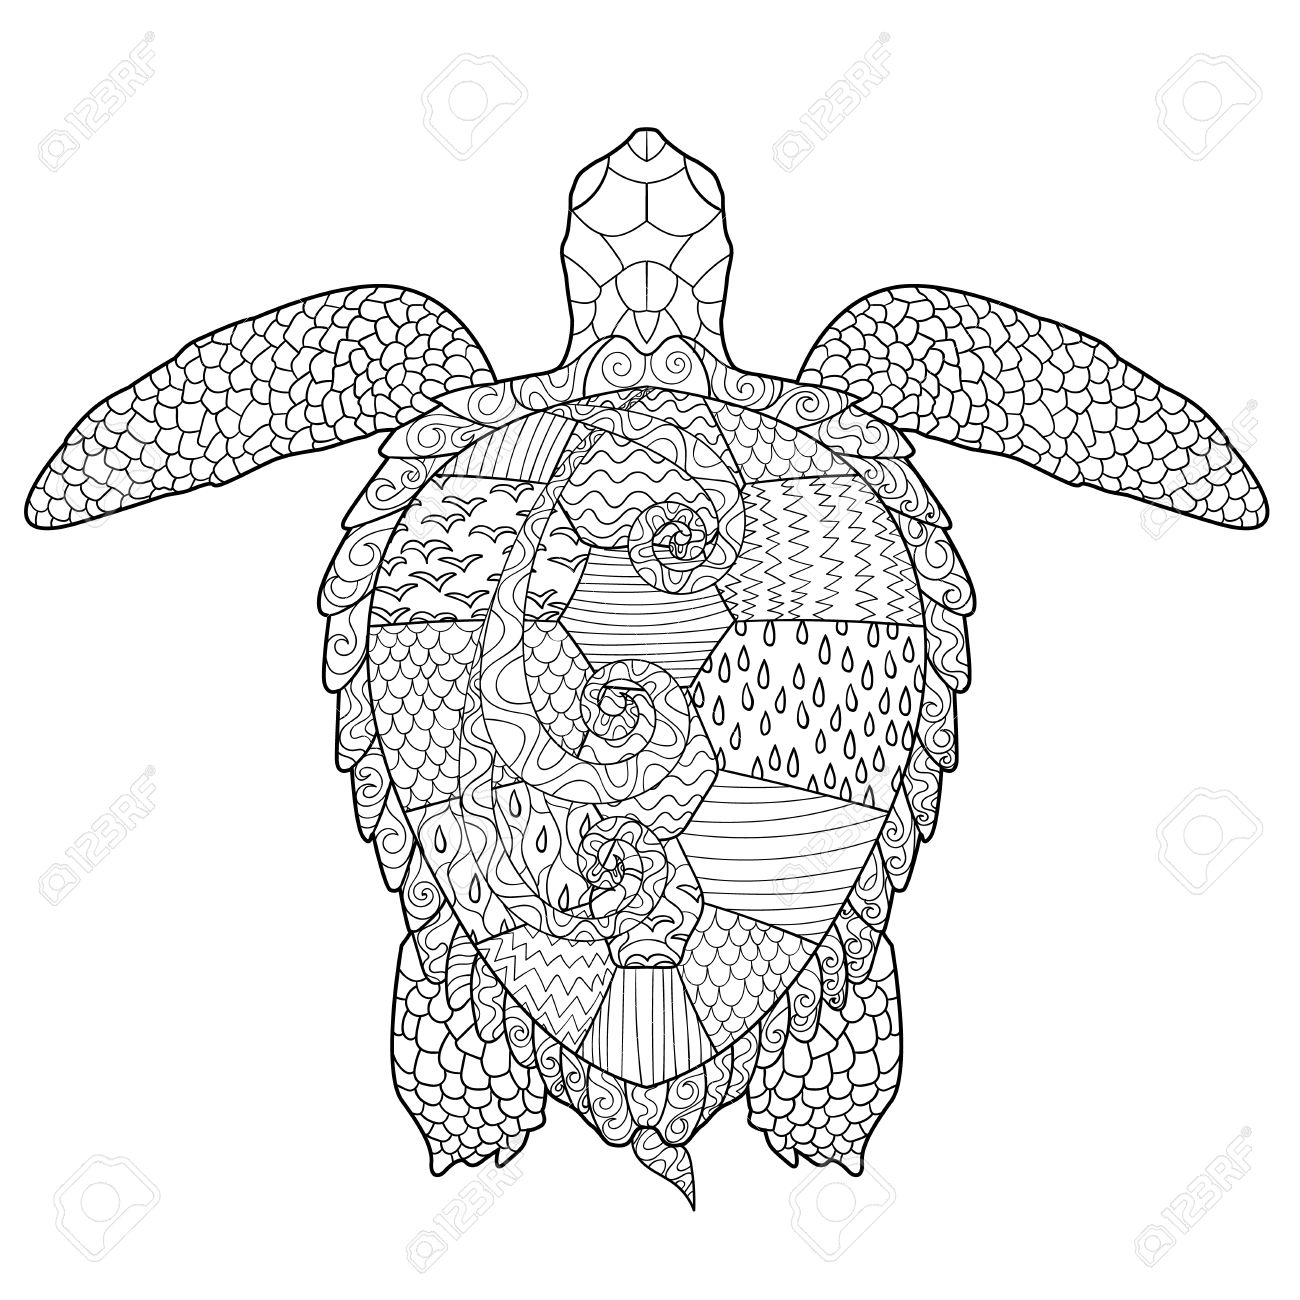 1300x1300 Sea Turtle With High Details. Adult Antistress Coloring Page